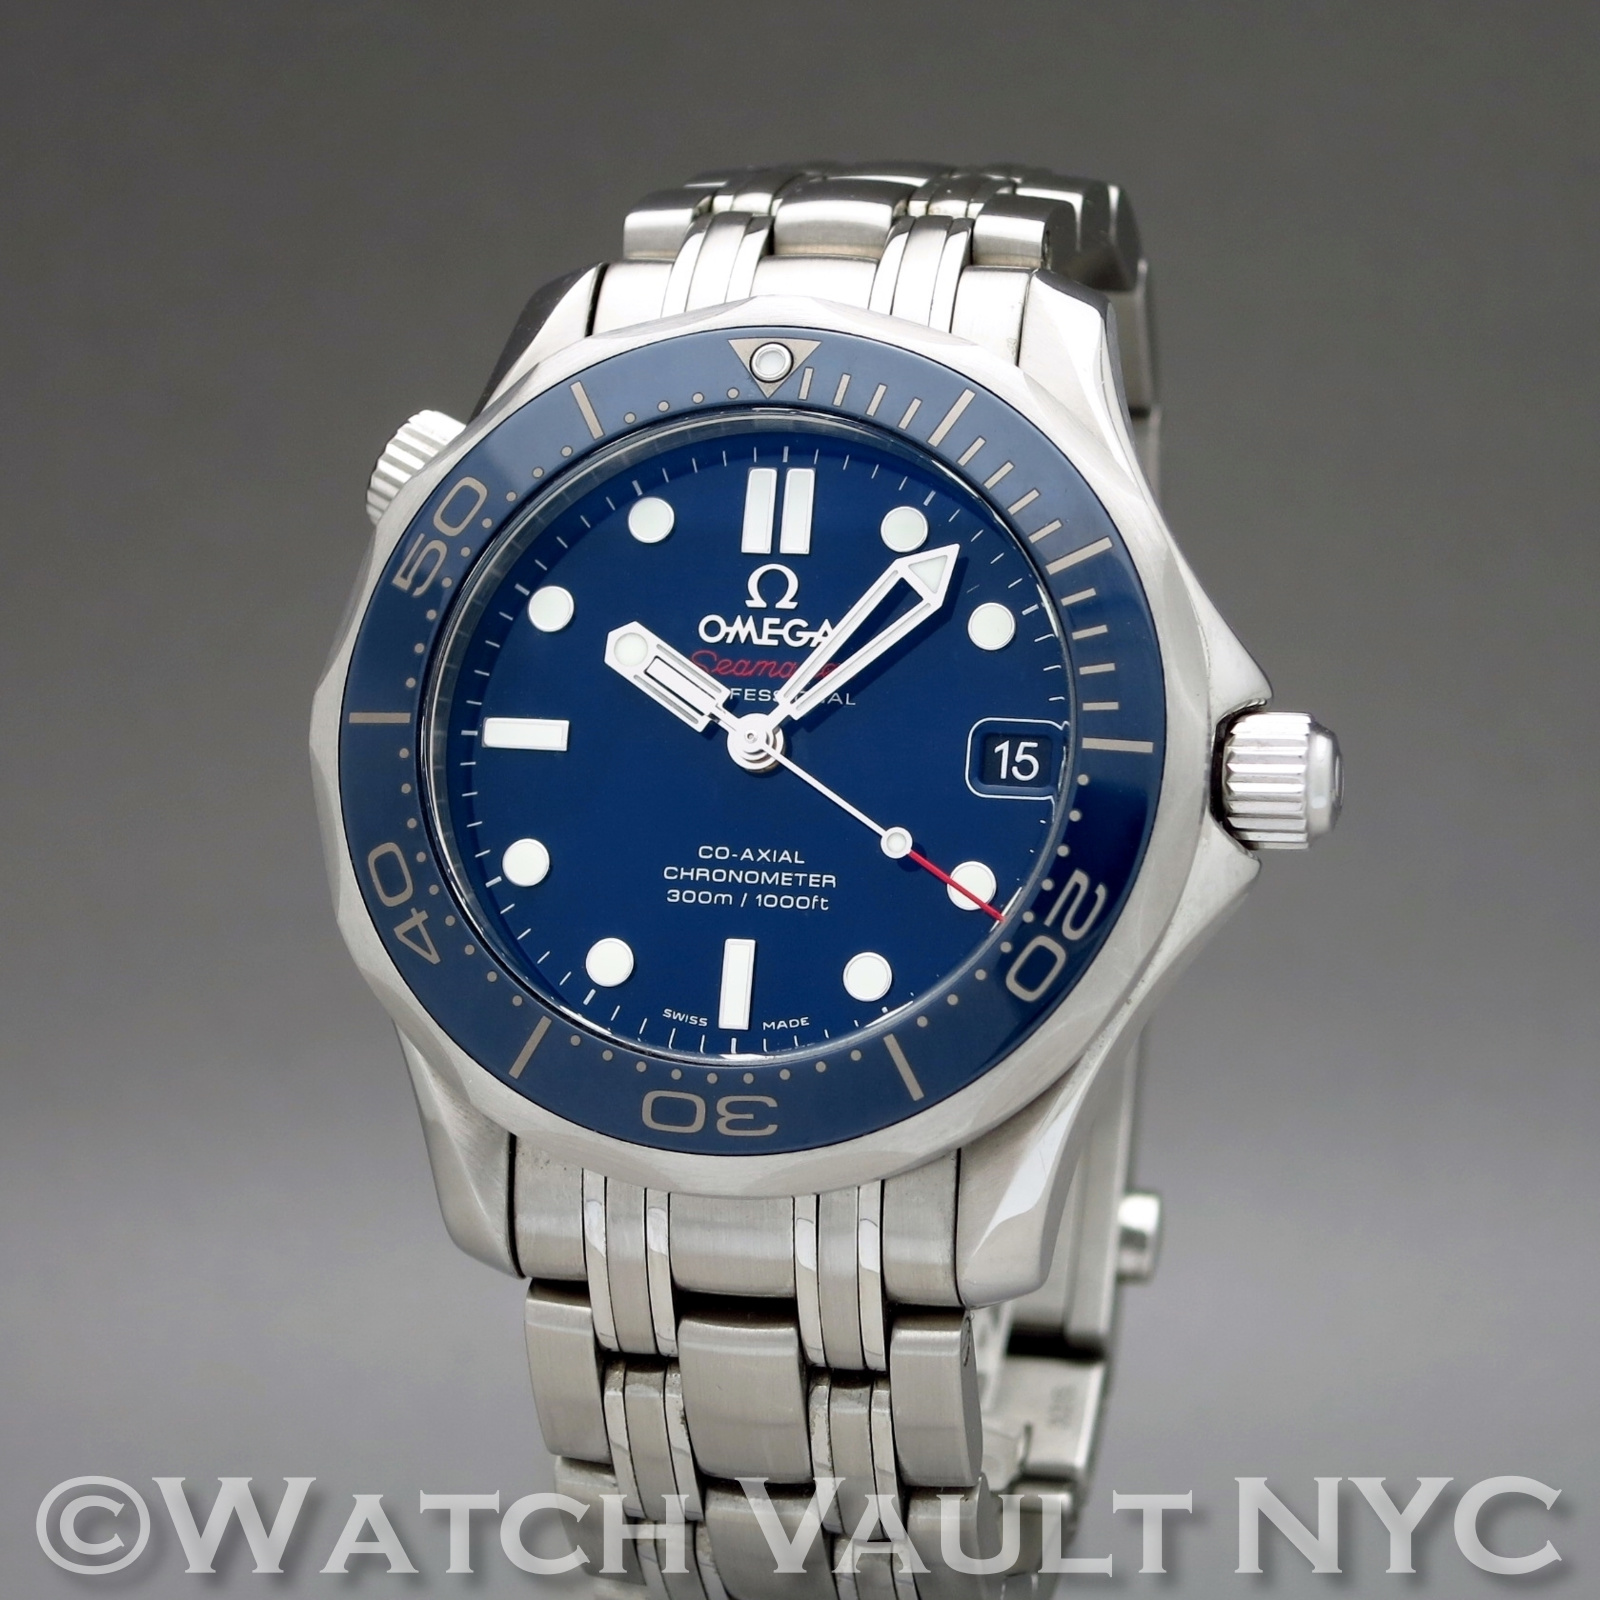 Omega seamaster professional james bond 300m ceramic bezel coaxial 36mm auto for Omega seamaster professional